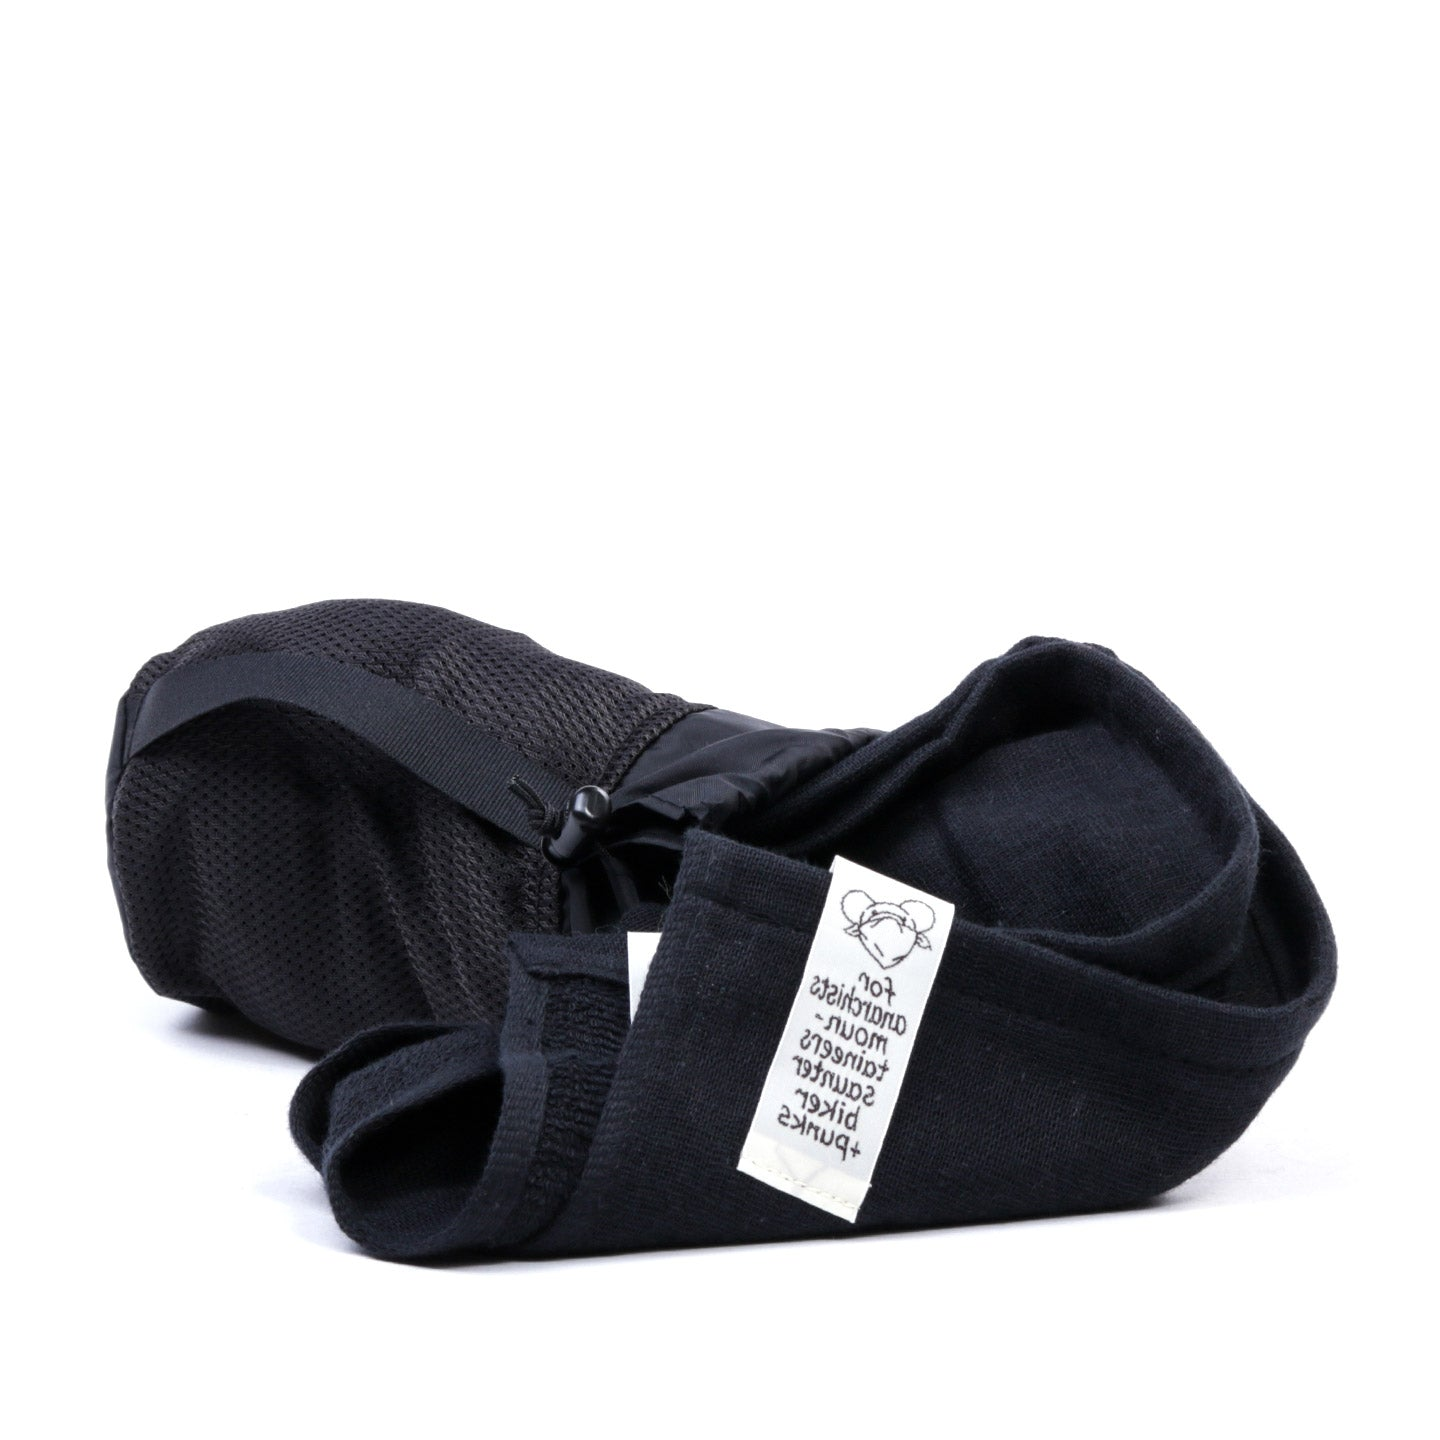 MOUNTAIN RESEARCH PROTESTER'S TOWEL BLACK